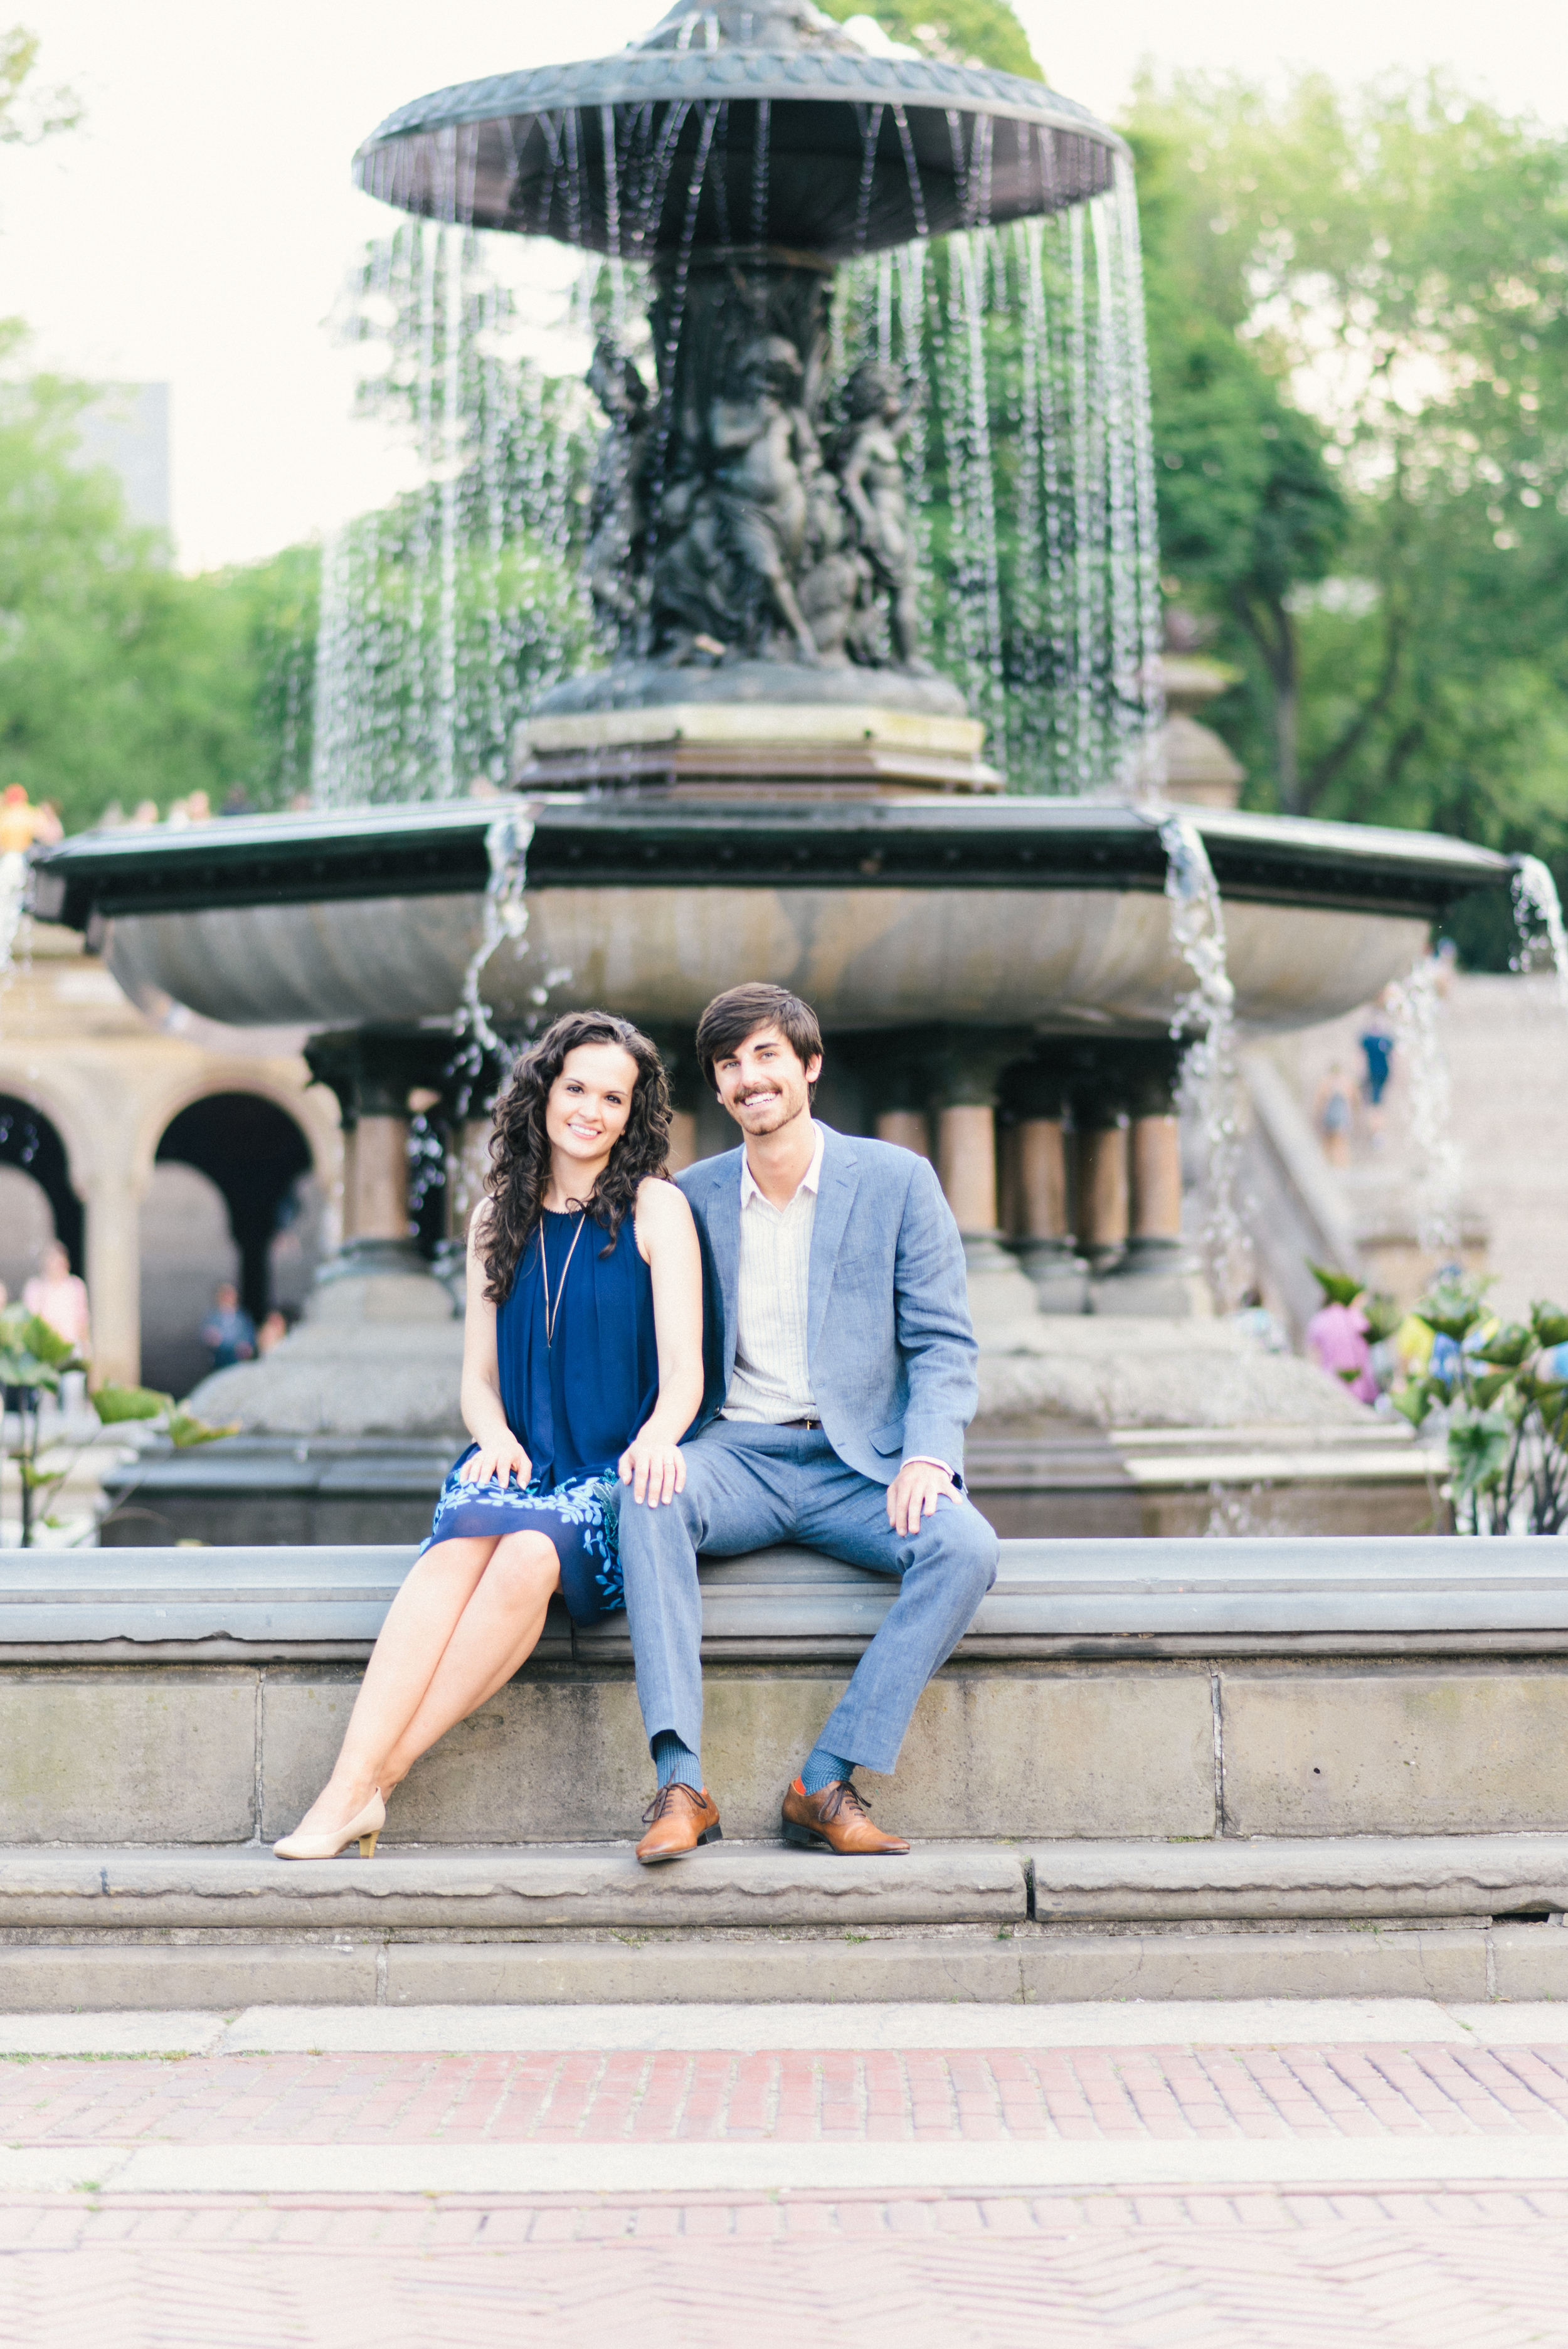 new-york-city-engagemnet-photographer-bethesda-fountain-central-park-engagement-session-nyc-couples-photographer-new-york-city-photographer-engagement-photographers-in-new-york-city